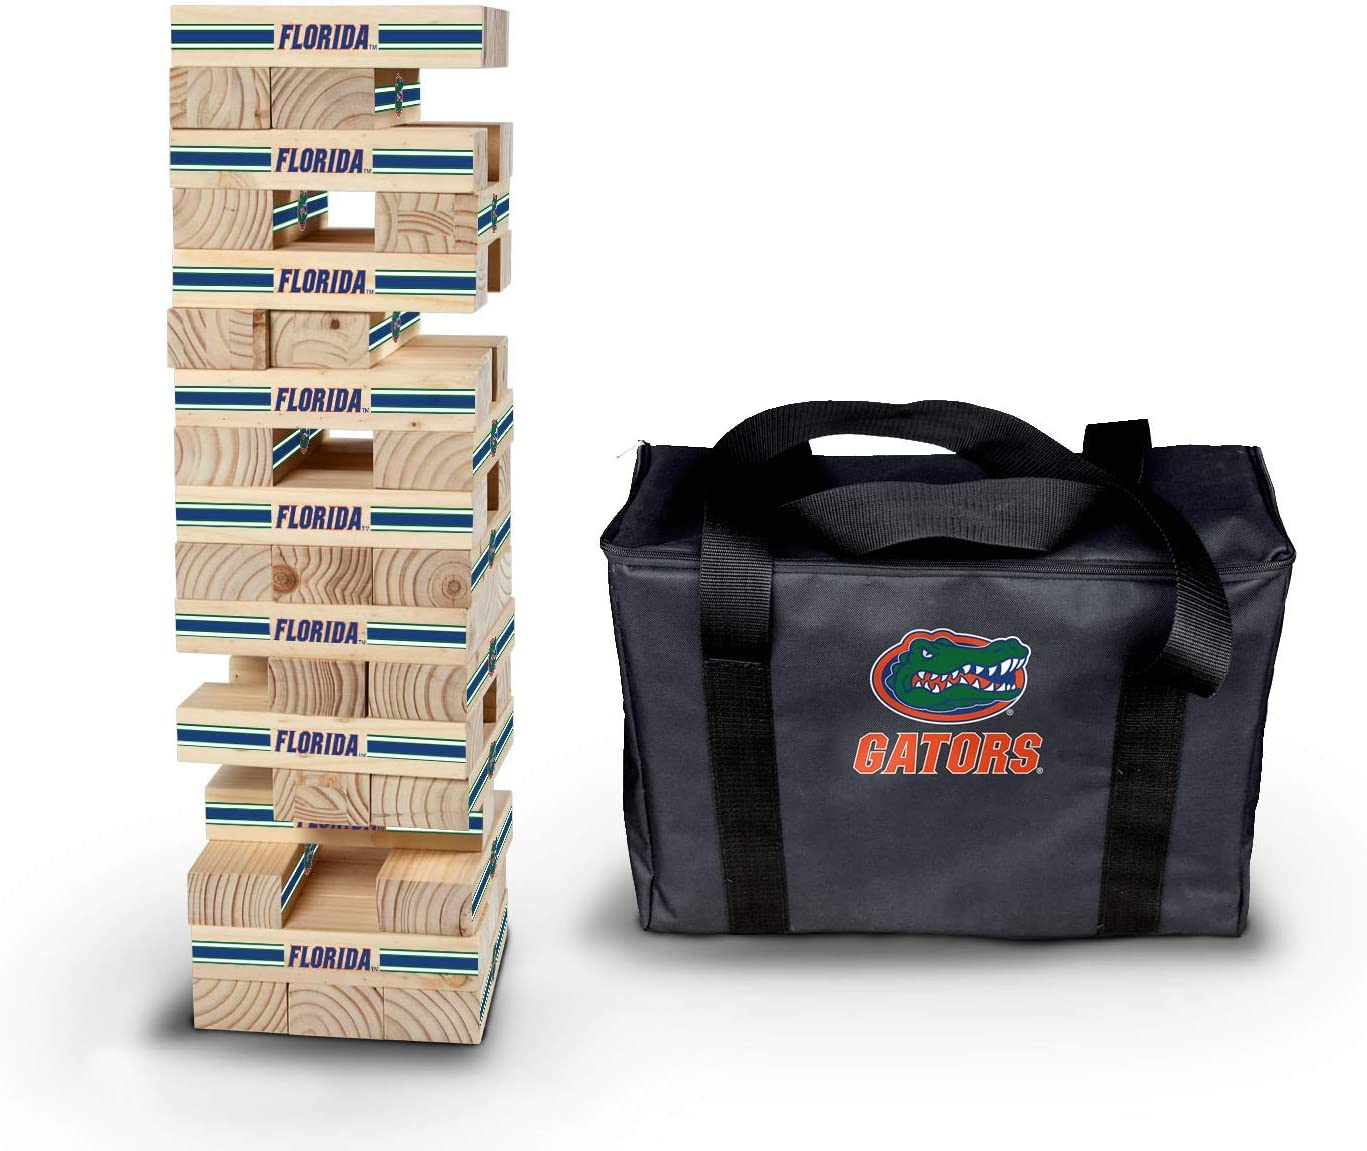 PROLINE NCAA College Florida Gators Super Stackers 10x3.5x2.5 Stripe Design